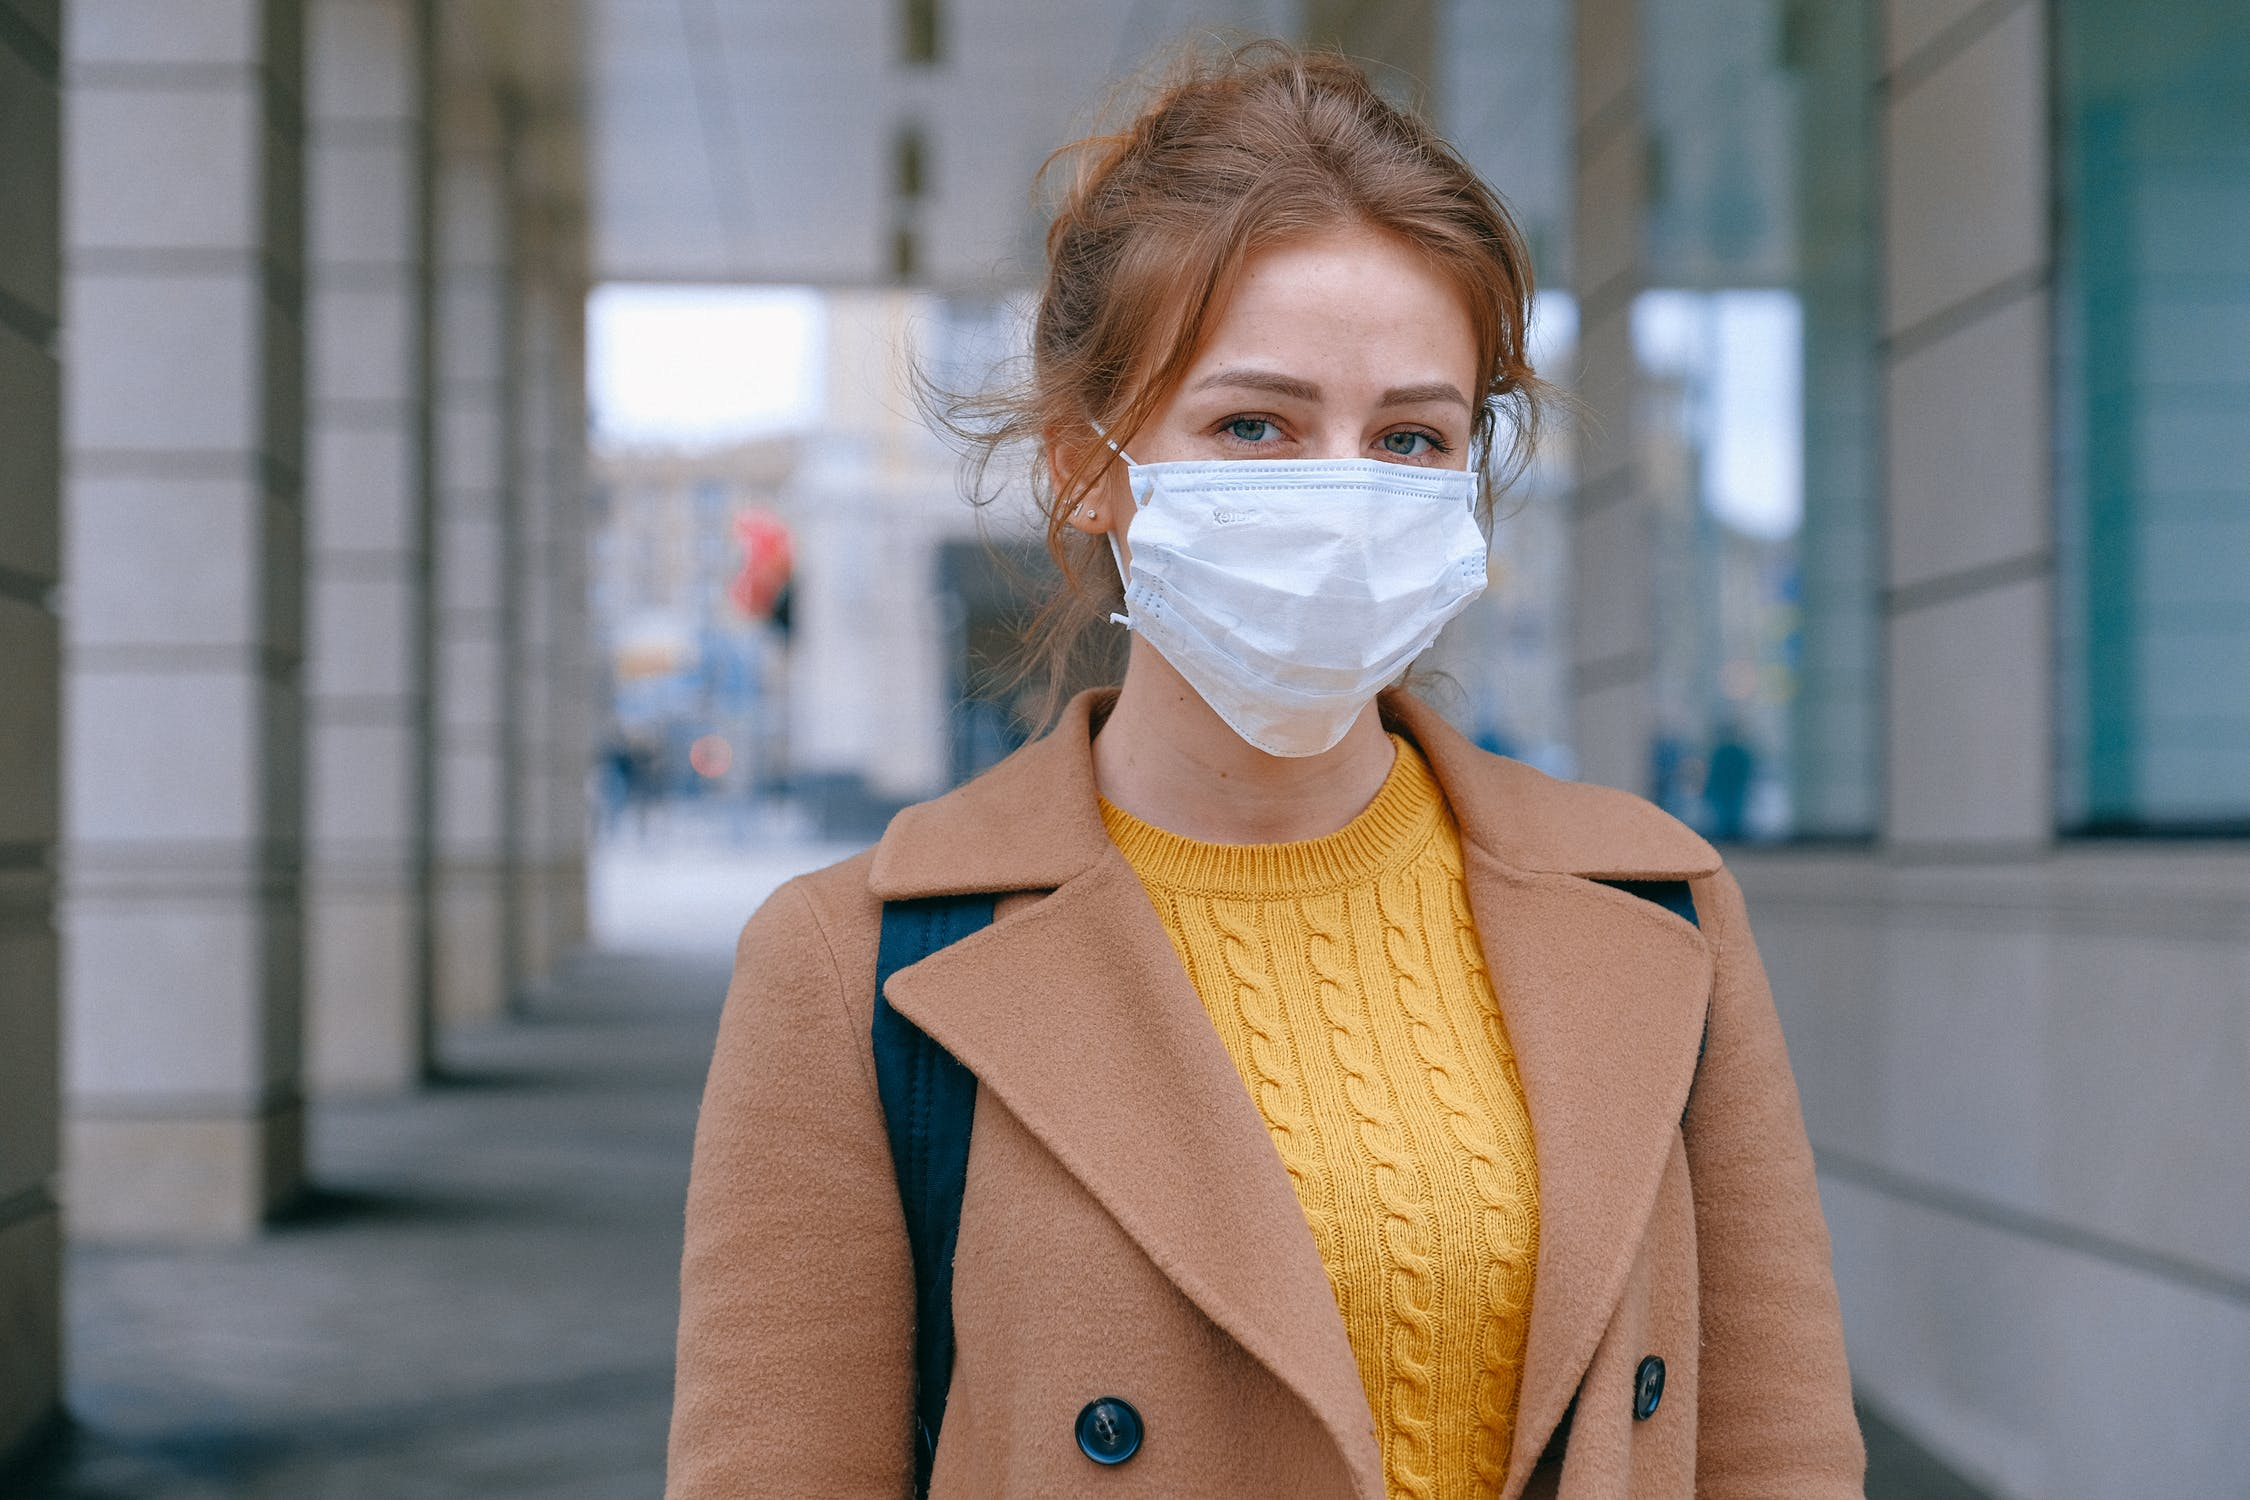 A woman standing under a building awning with a face mask on. Photo by pexels user Anna Shvets. Used courtesy of Pexels.com